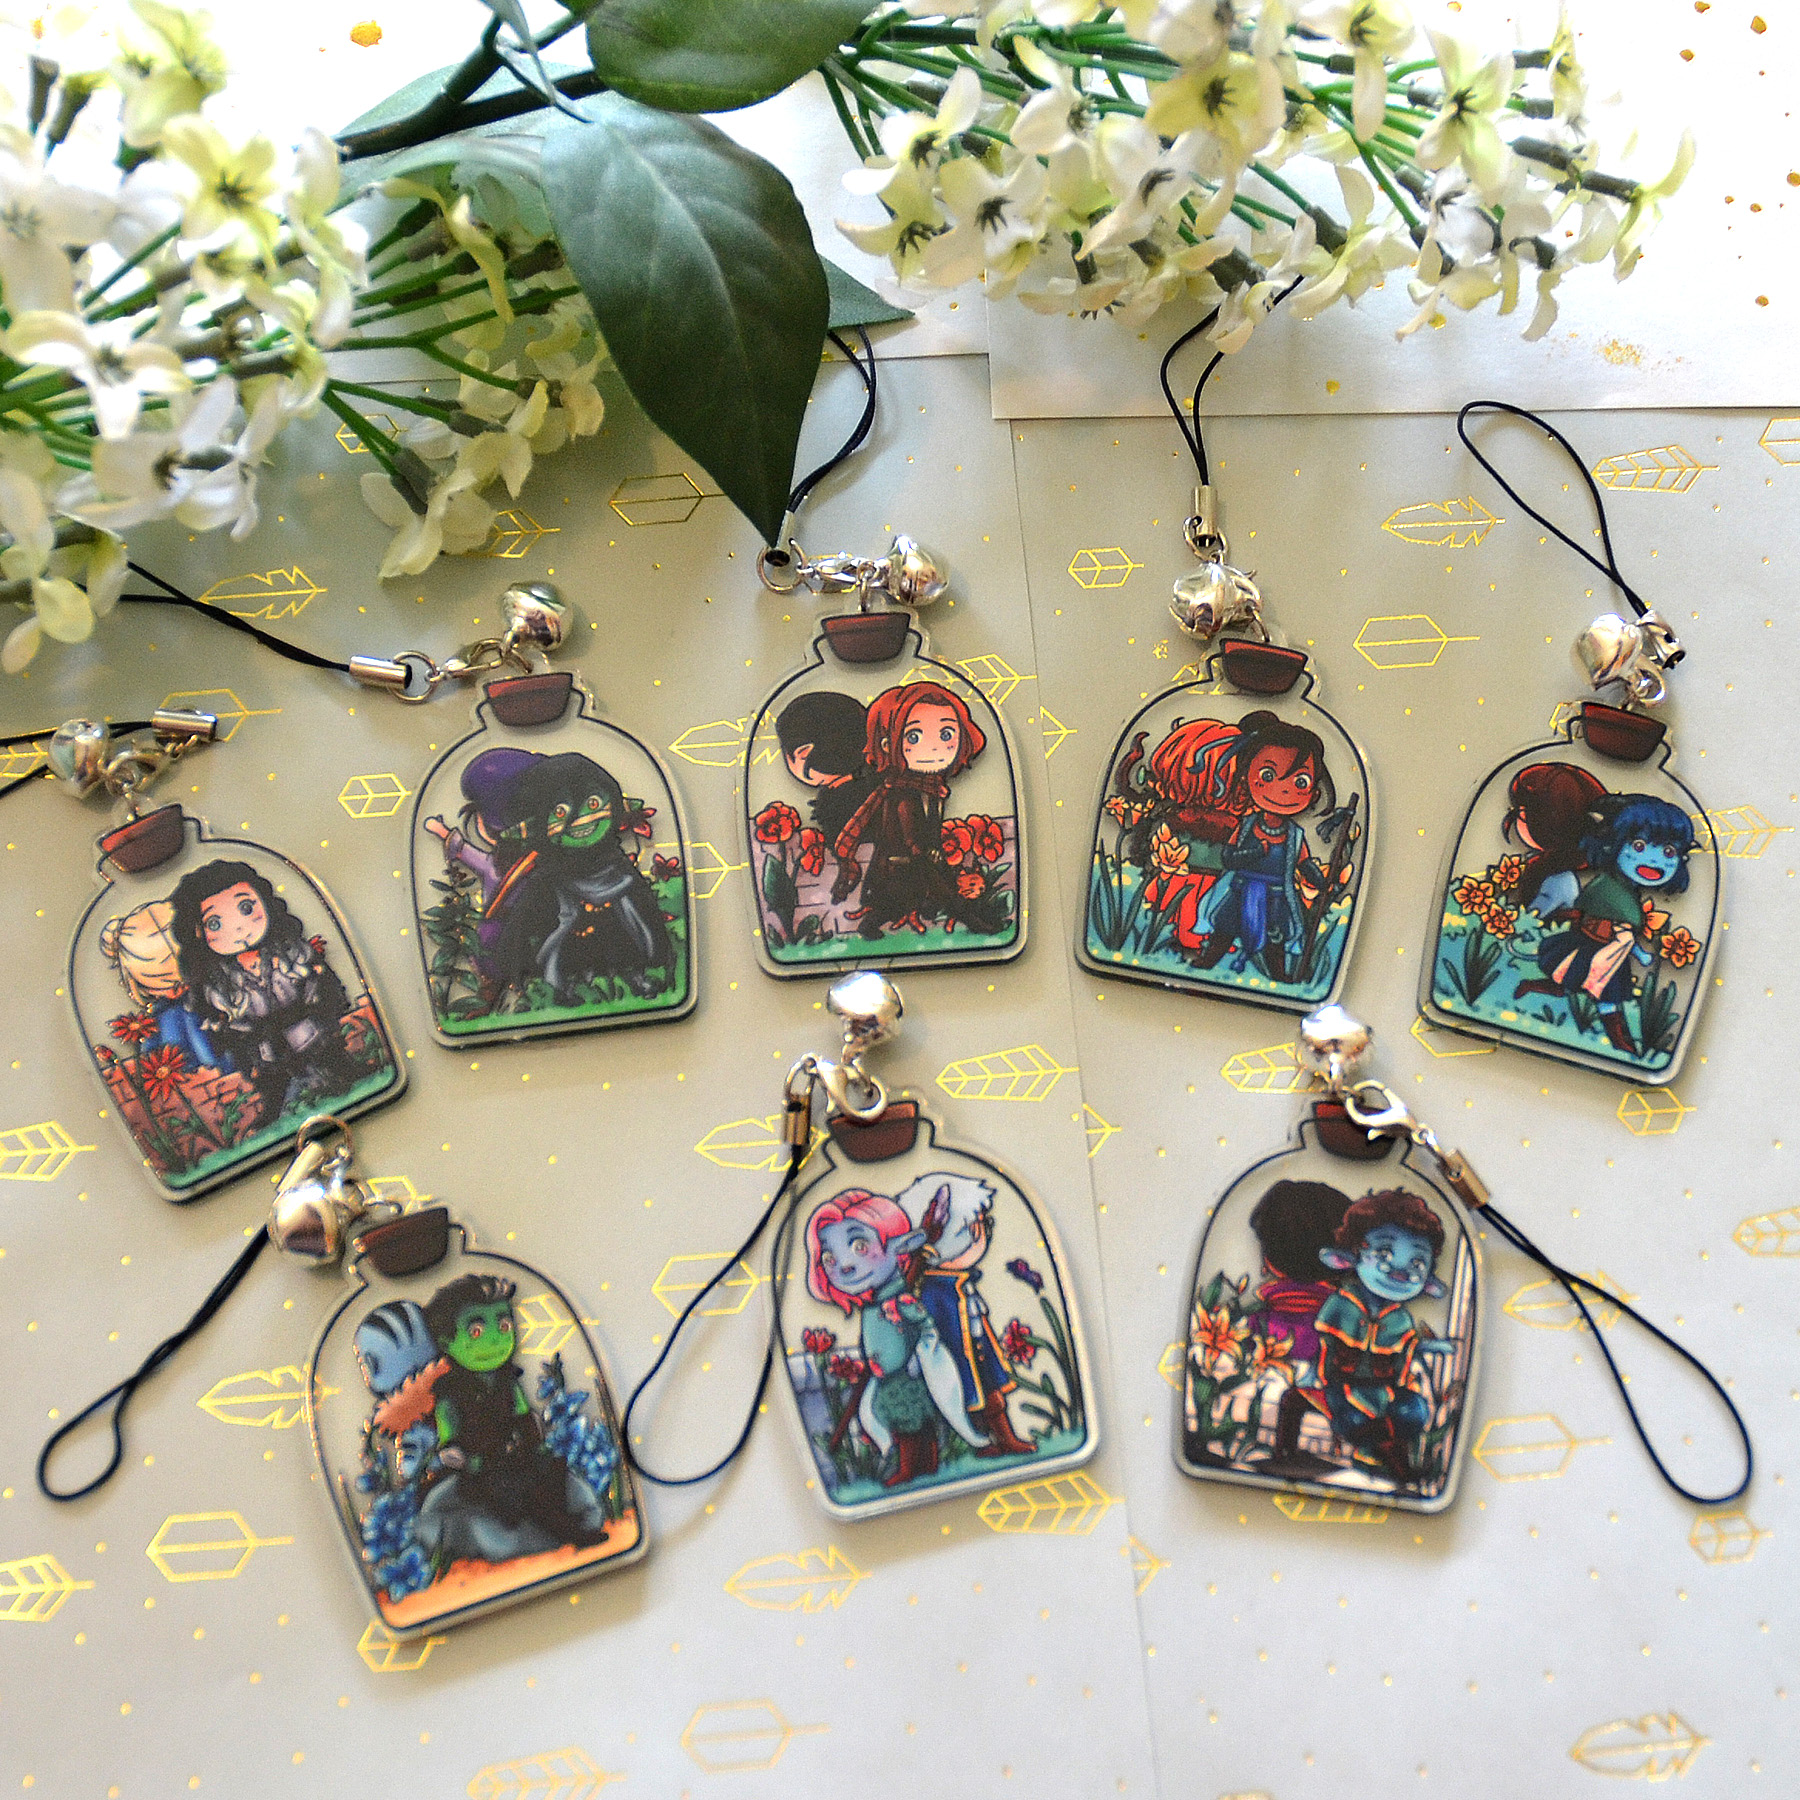 Critical Role Potions - Vox Machina & The Mighty Nein Acrylic Charms sold  by Arisupaints